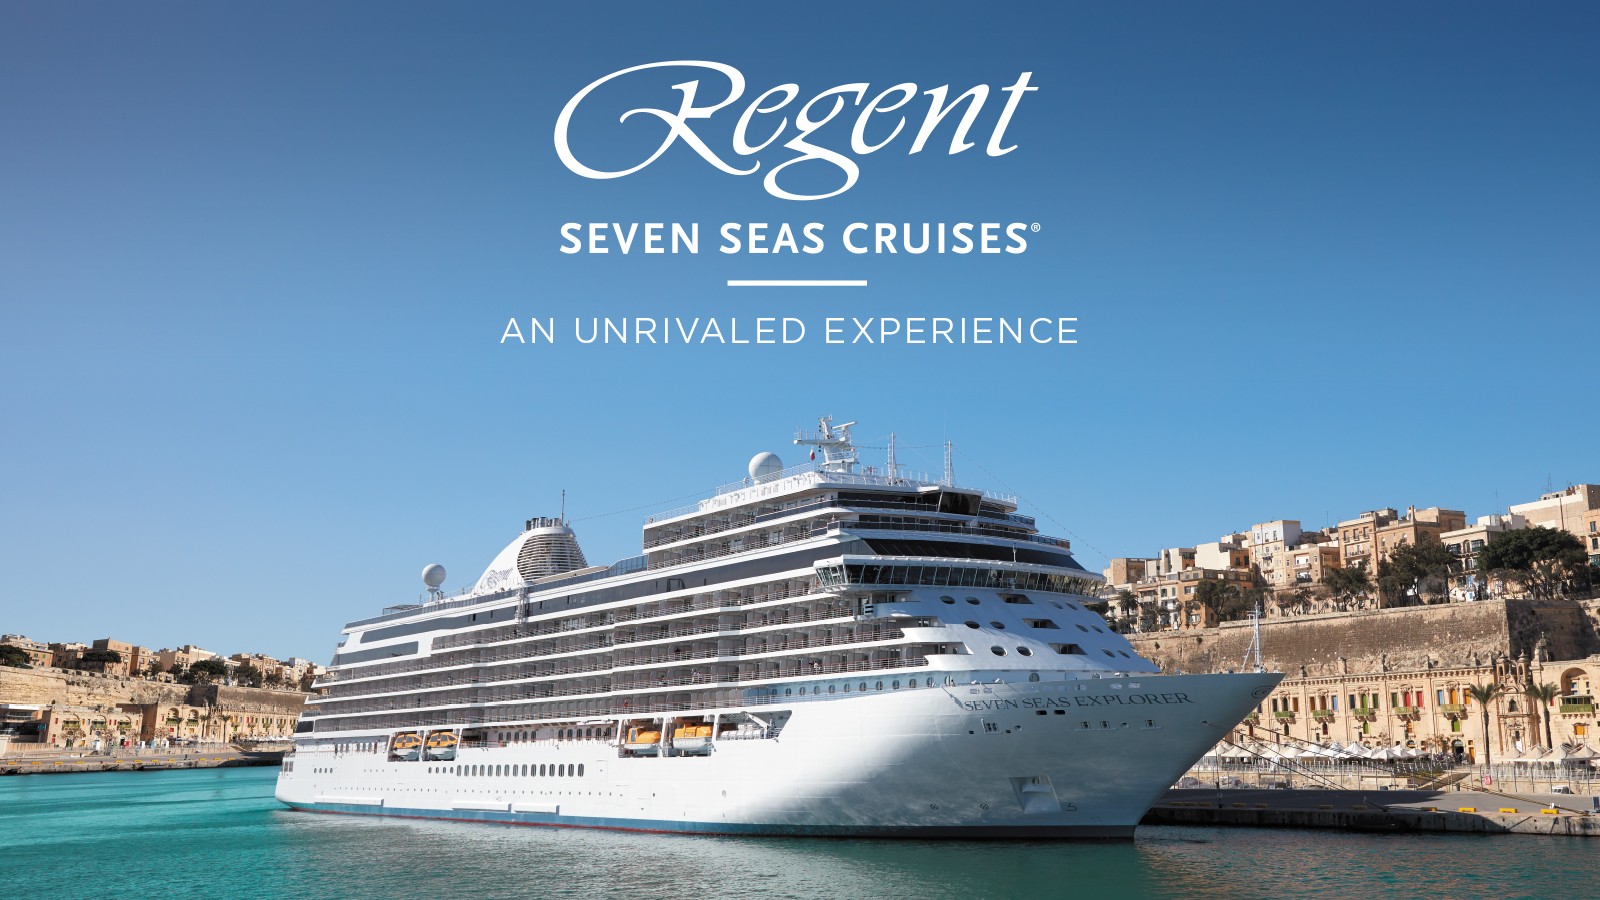 Regent Seven Seas Cruises It's All Included